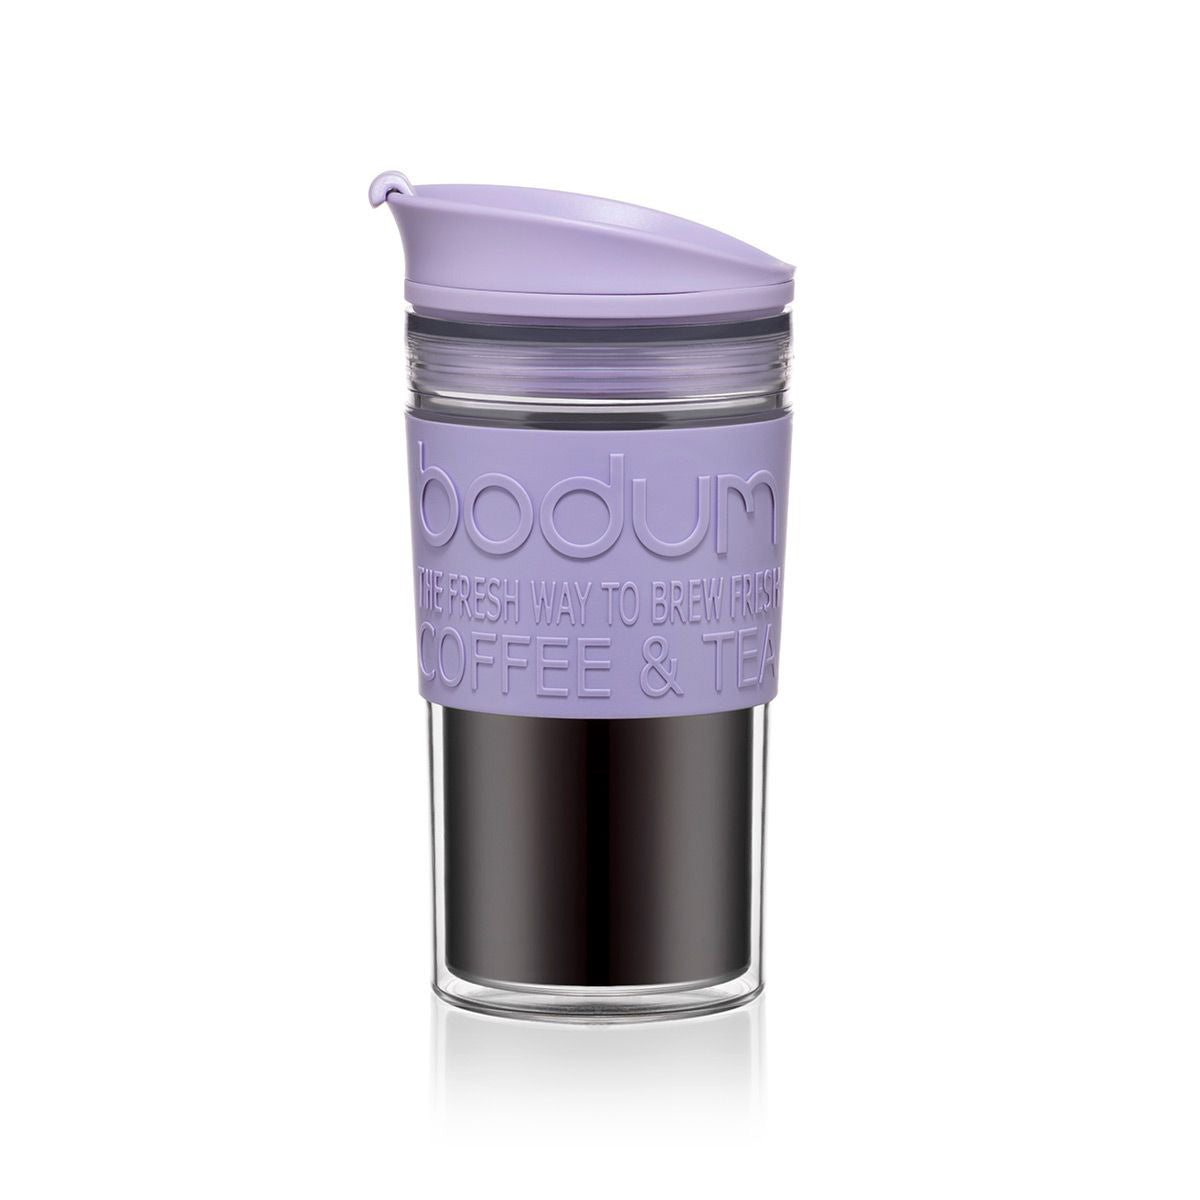 Bodum Travel Mug Acrylic 12oz - Verbena Purple - NEW 2020 Collection